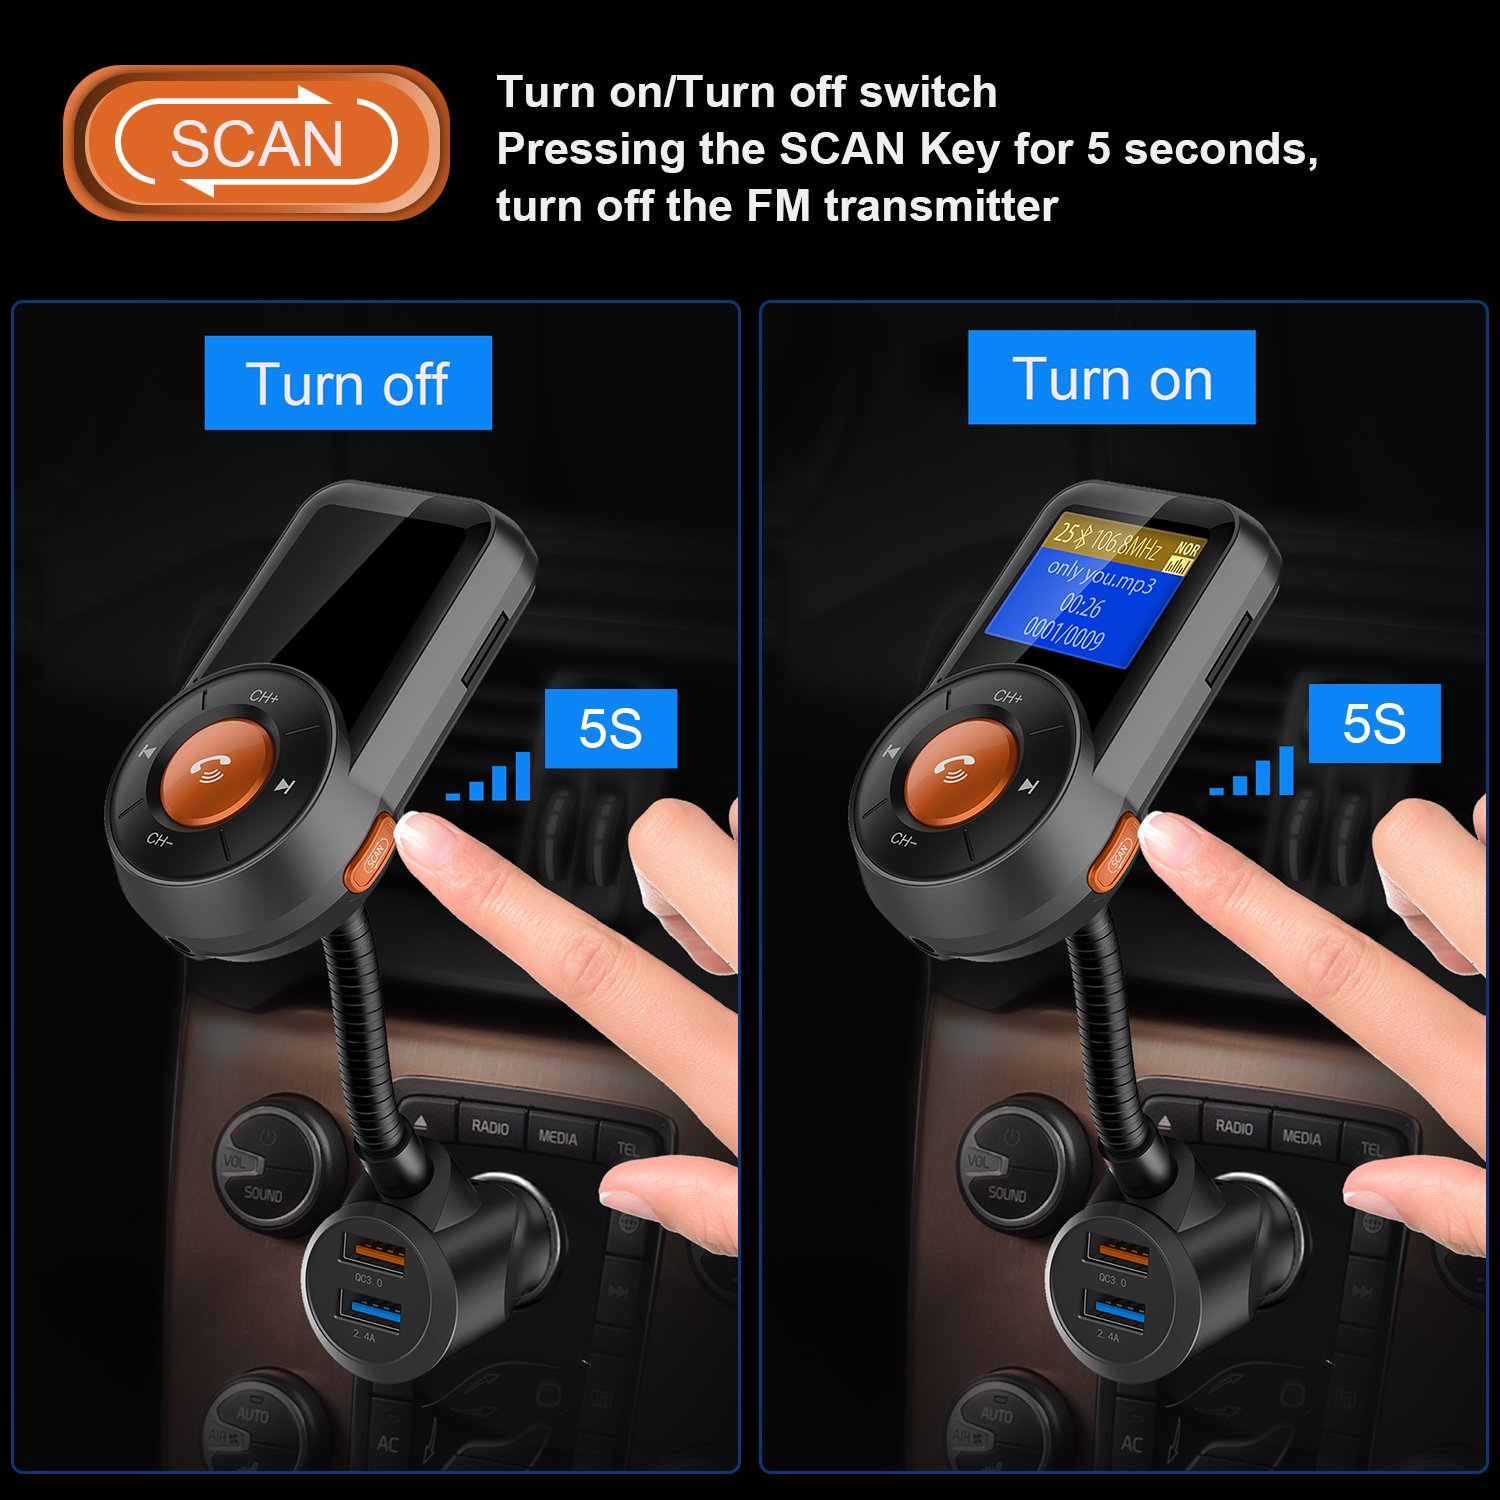 Hicarer (New Version) FM Transmitter, Radio Adapter Receiver Hands-free Wireless Car Adapter, Scan FM Transmitter, 1.4 Inch LCD Display, QC3.0/2.4A Dual USB Ports, Supports for Bluetooth/TF Card by Hicarer (Image #2)